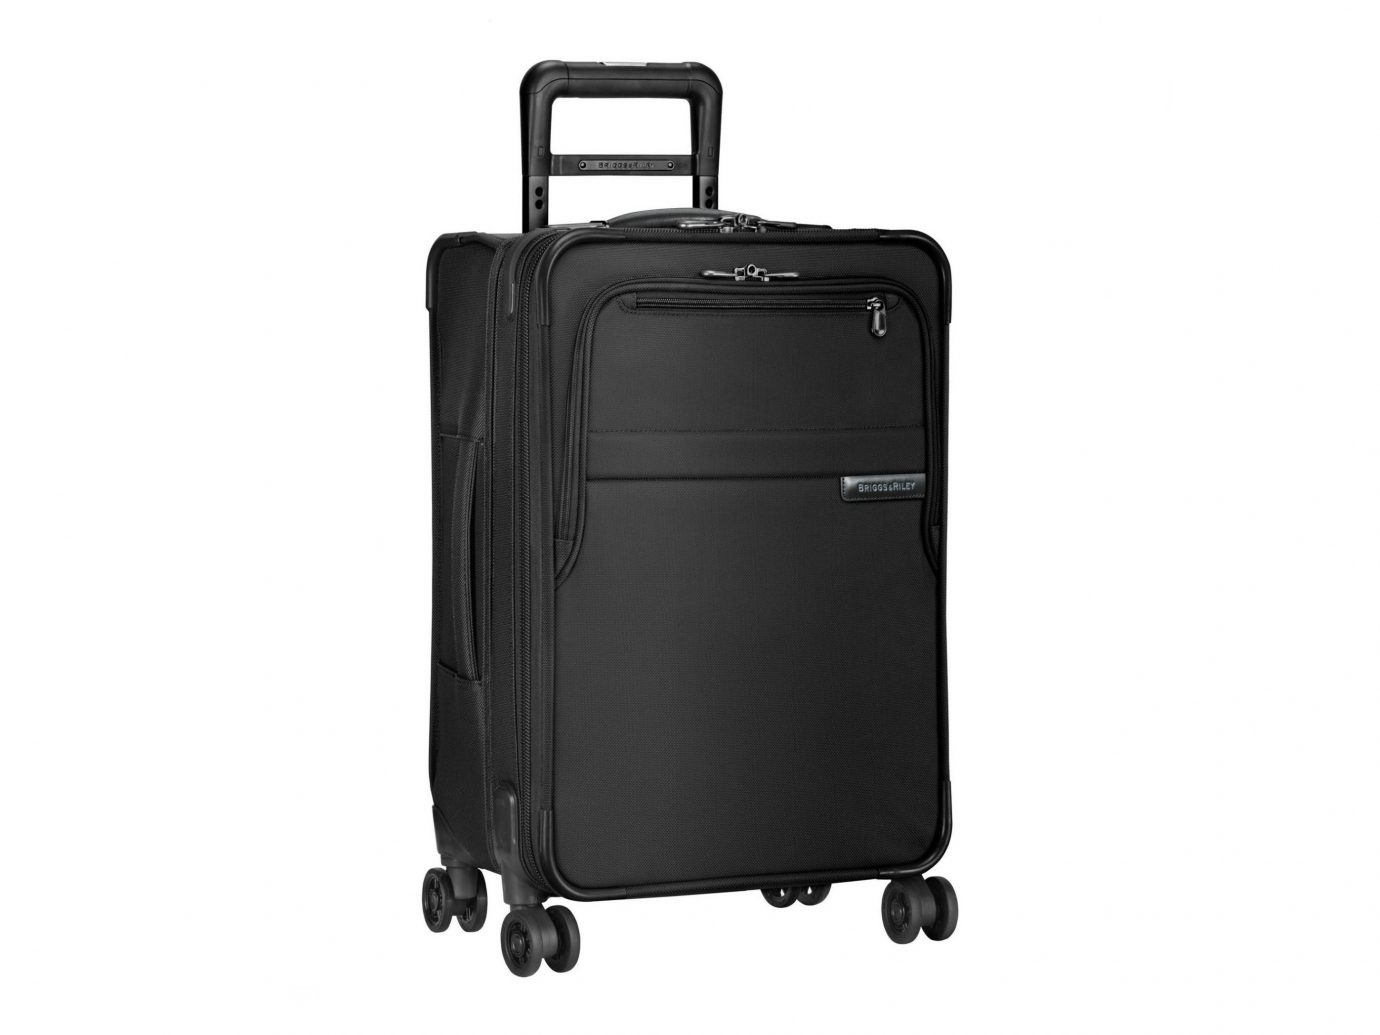 Travel Shop Travel Tech Travel Tips black suitcase accessory product case hand luggage product design luggage & bags appliance brand